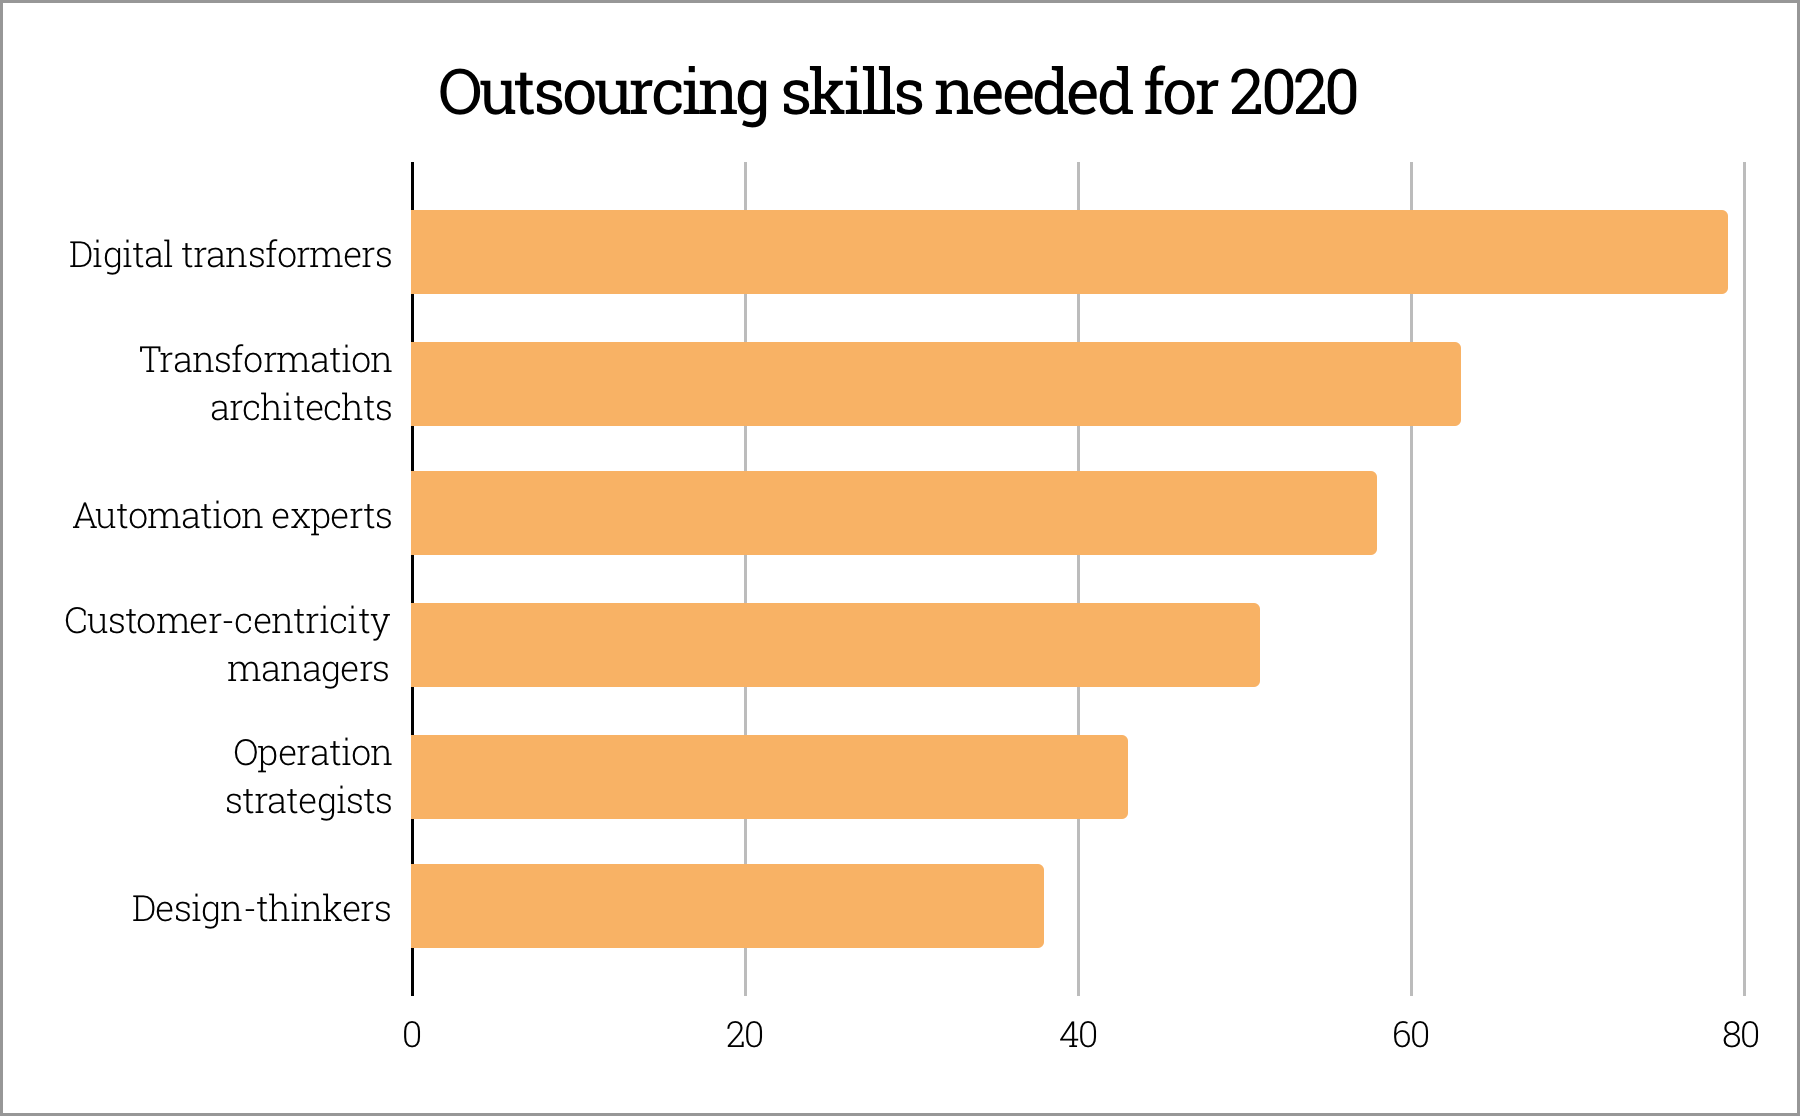 Outsourcing skills needed in 2020